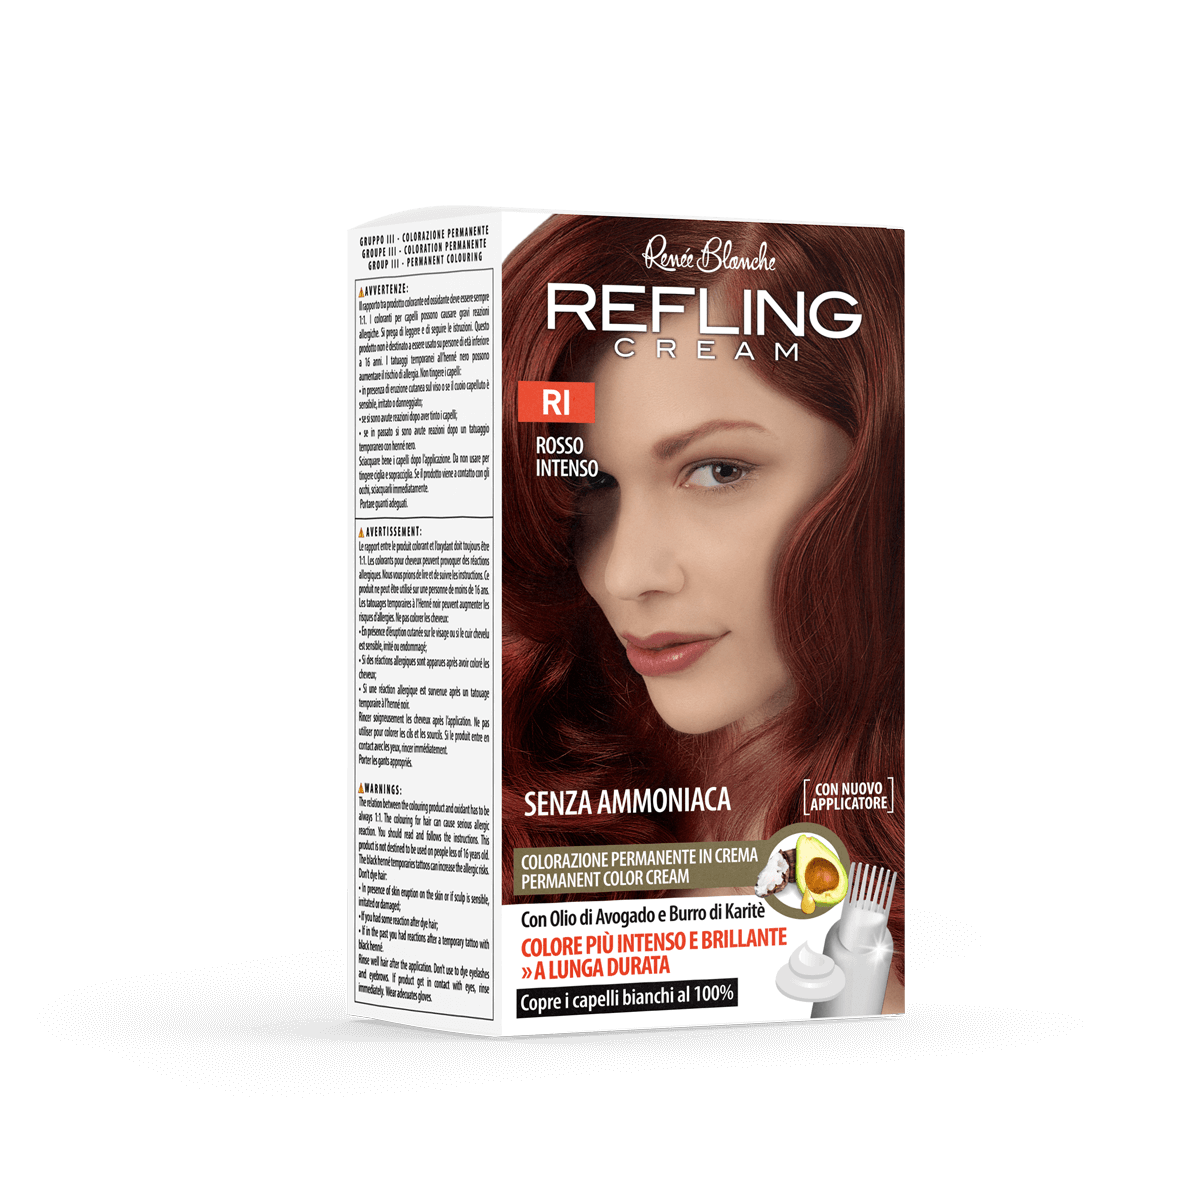 [:it]rosso-intenso-refling[:]